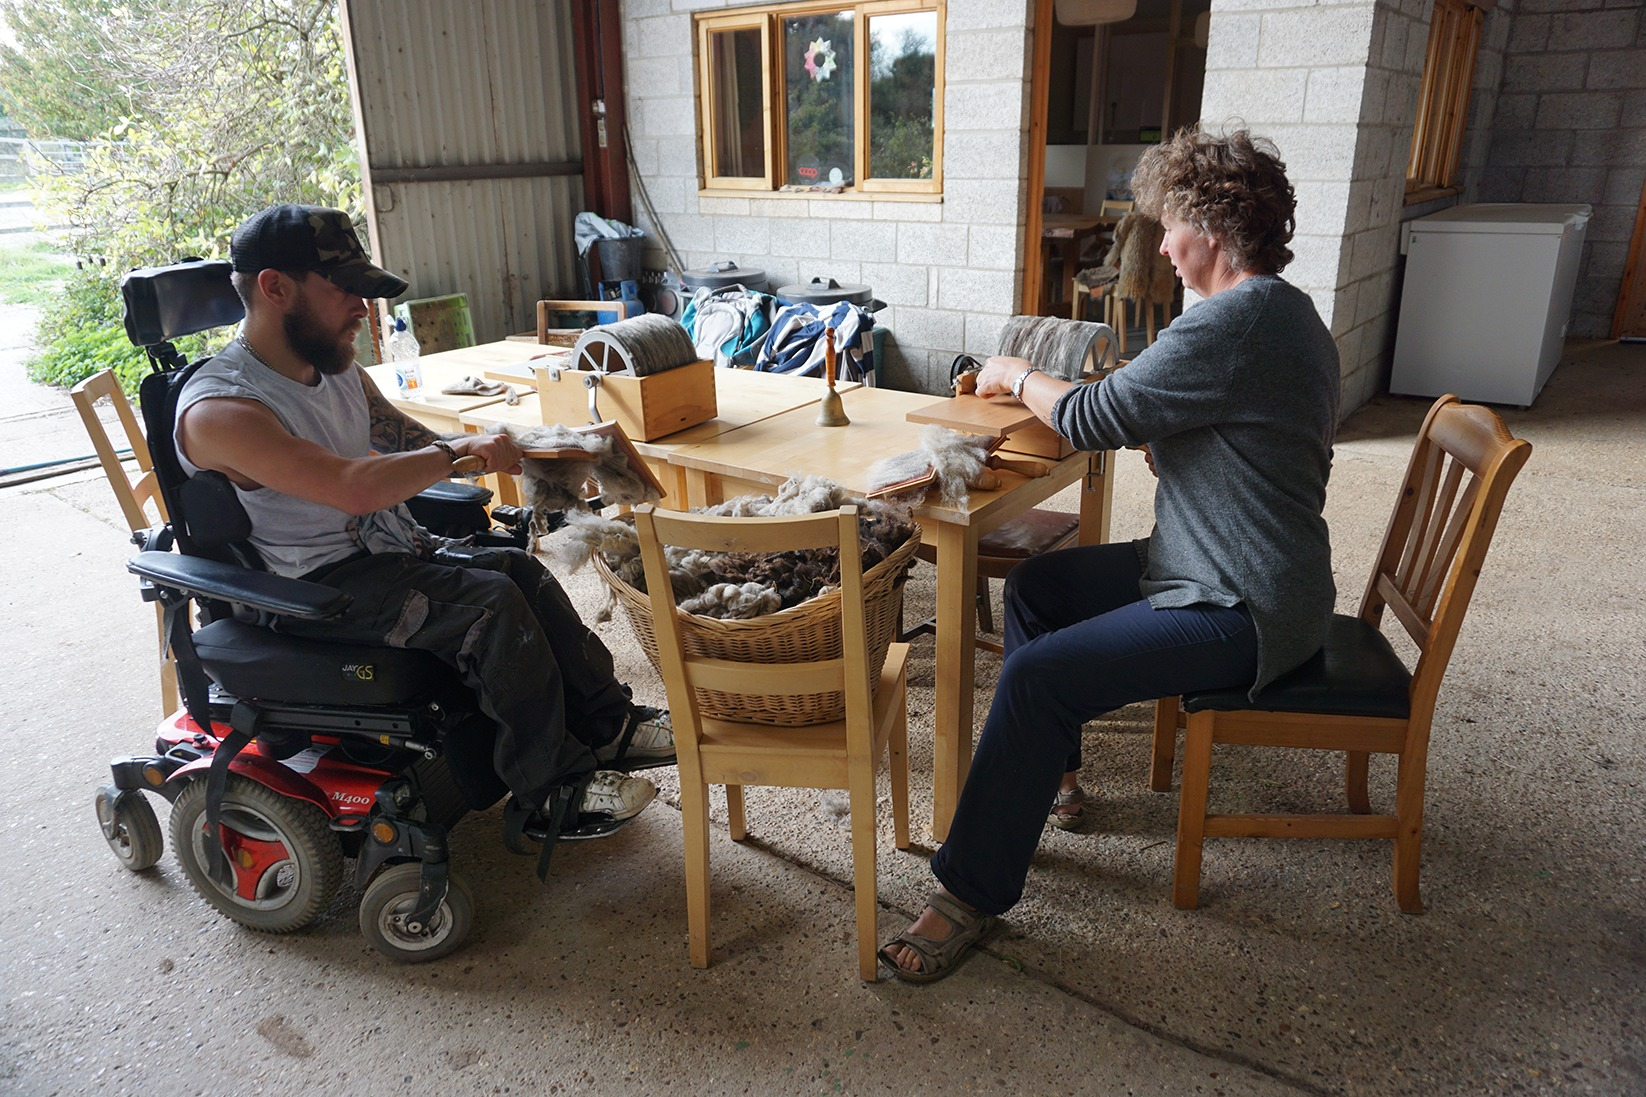 HELPING HAND: Tom Stentiford and Lois Gardner carding wool